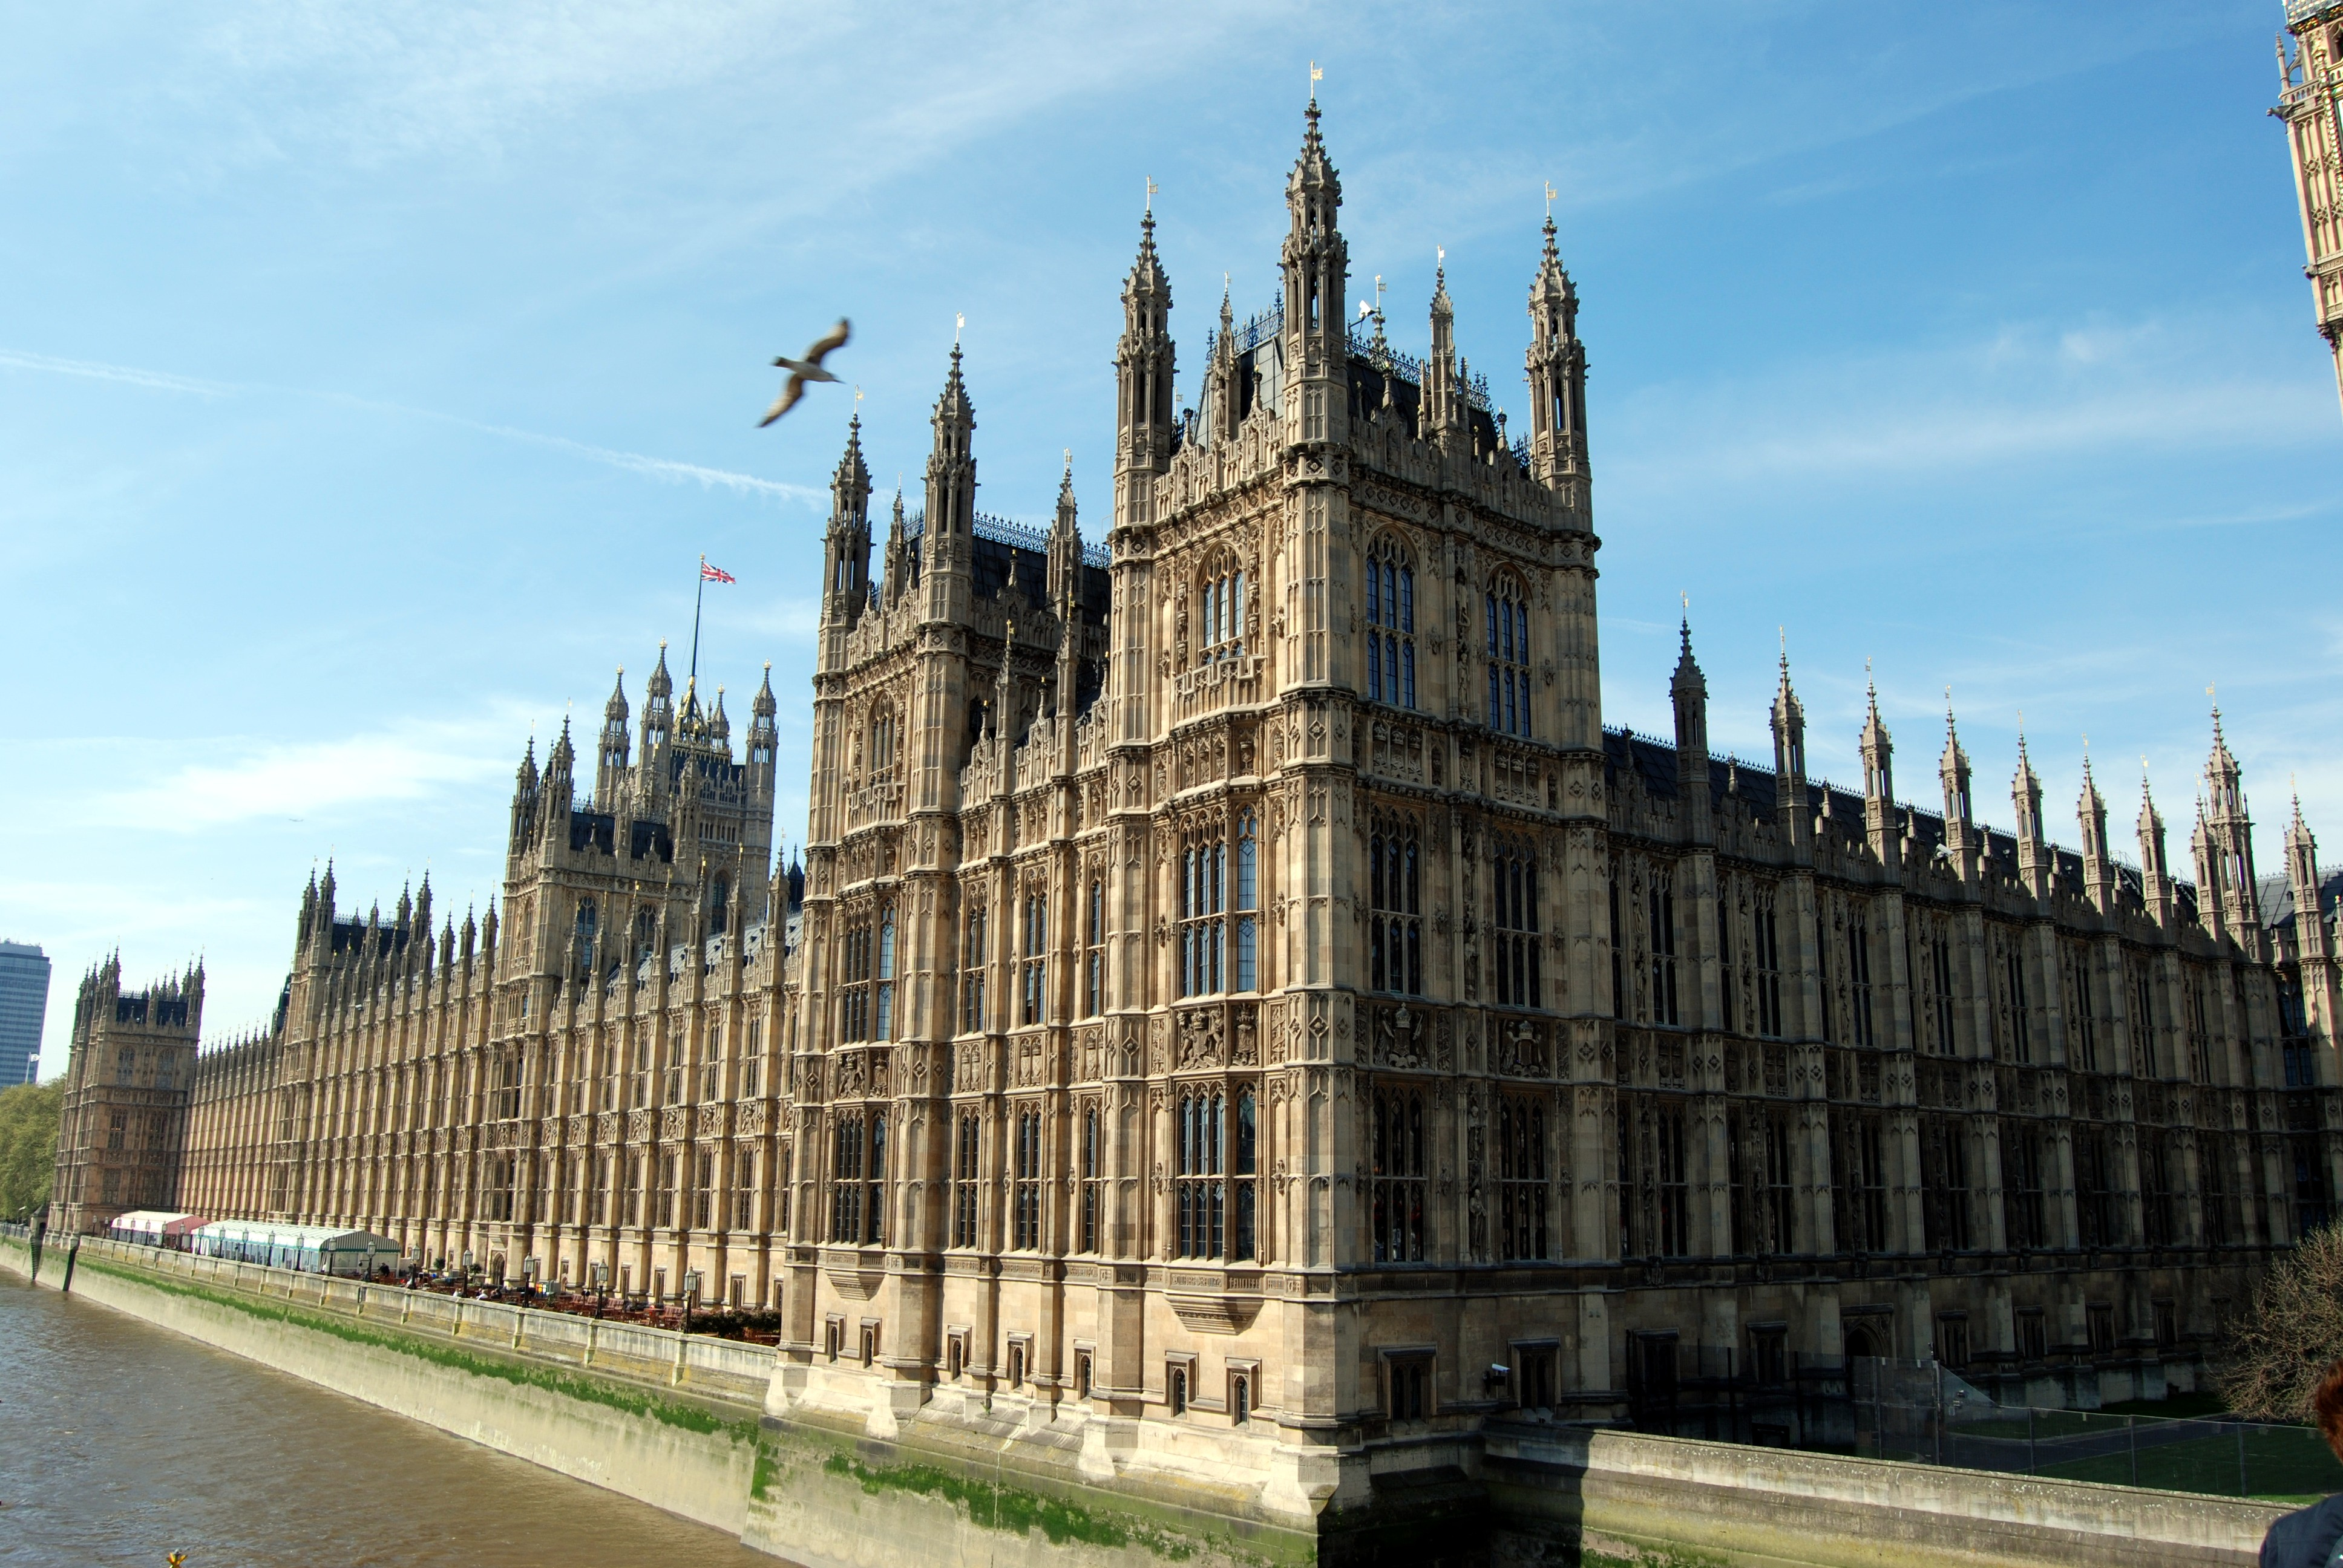 Palace of Westminister